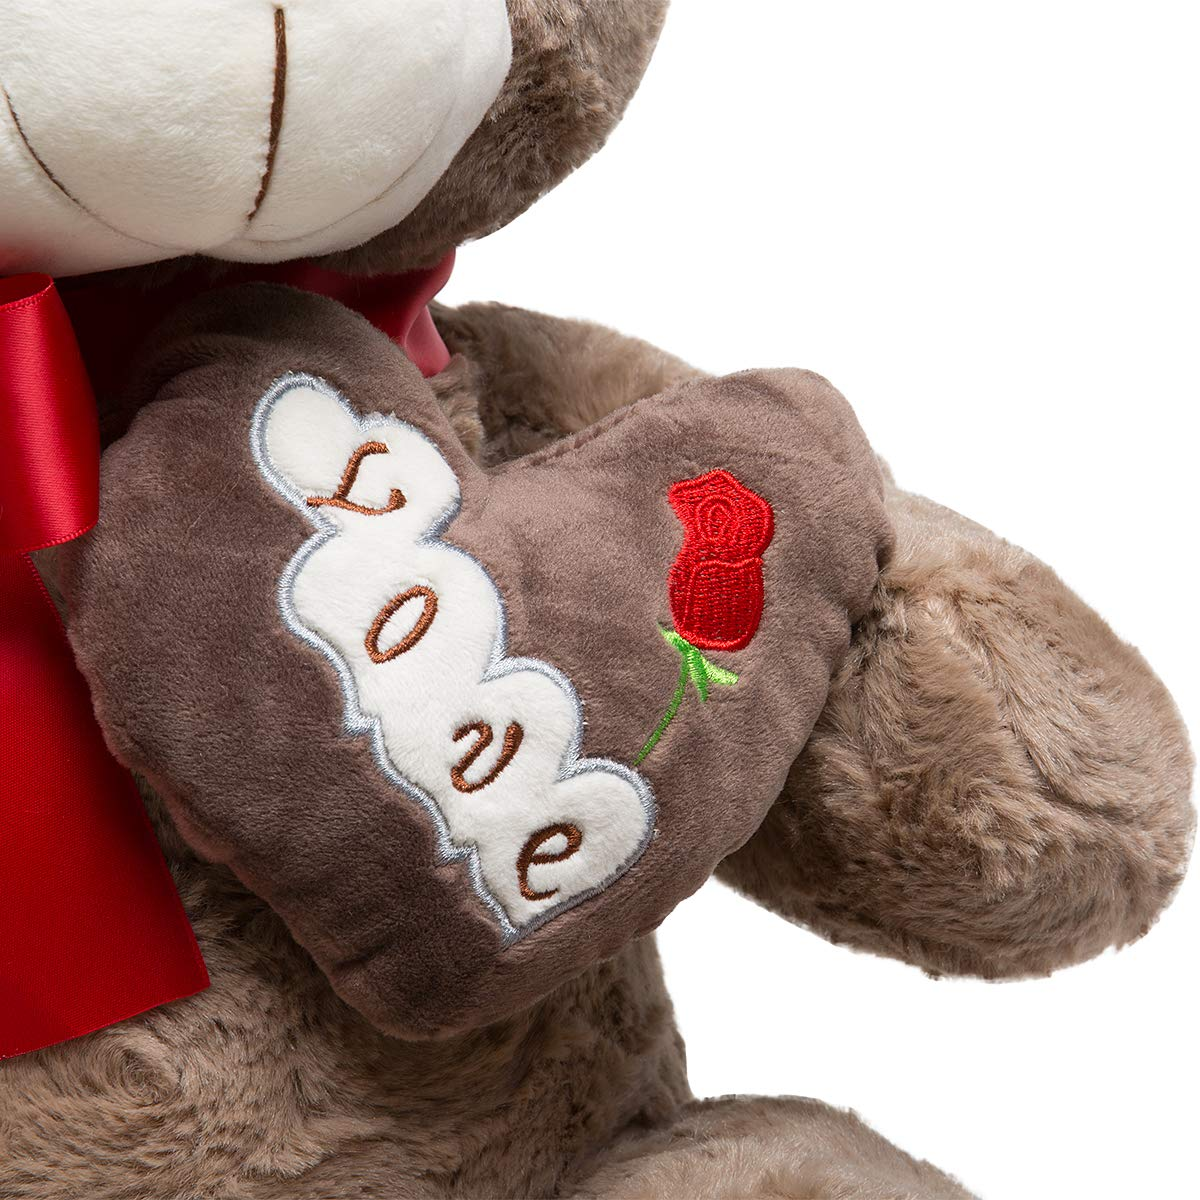 HollyHOME Plush Teddy Bear Big Stuffed Animal with Love Heart in The Chest Embroidered Love and Rose 26 Inches Tan